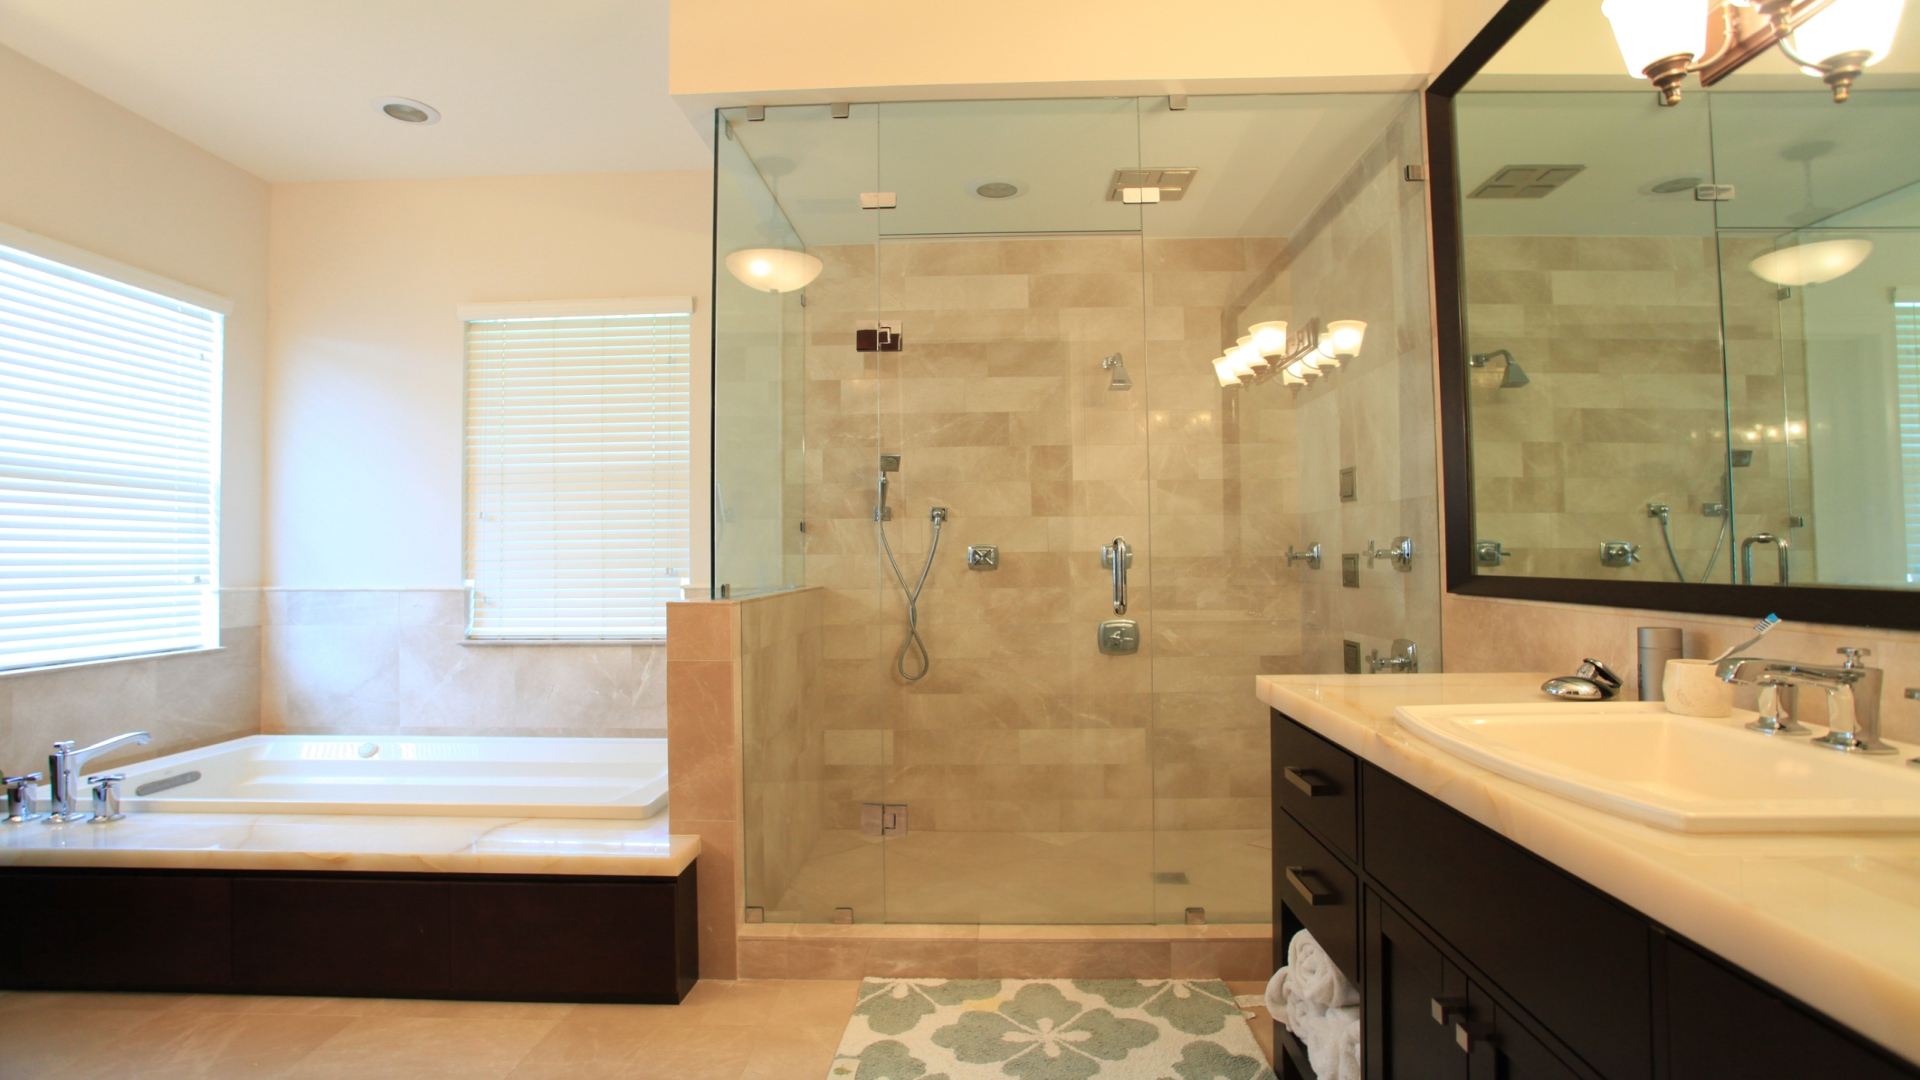 a take purewal general gallery contractor hb inc remodel brooklyn contractors queens bathroom look our at